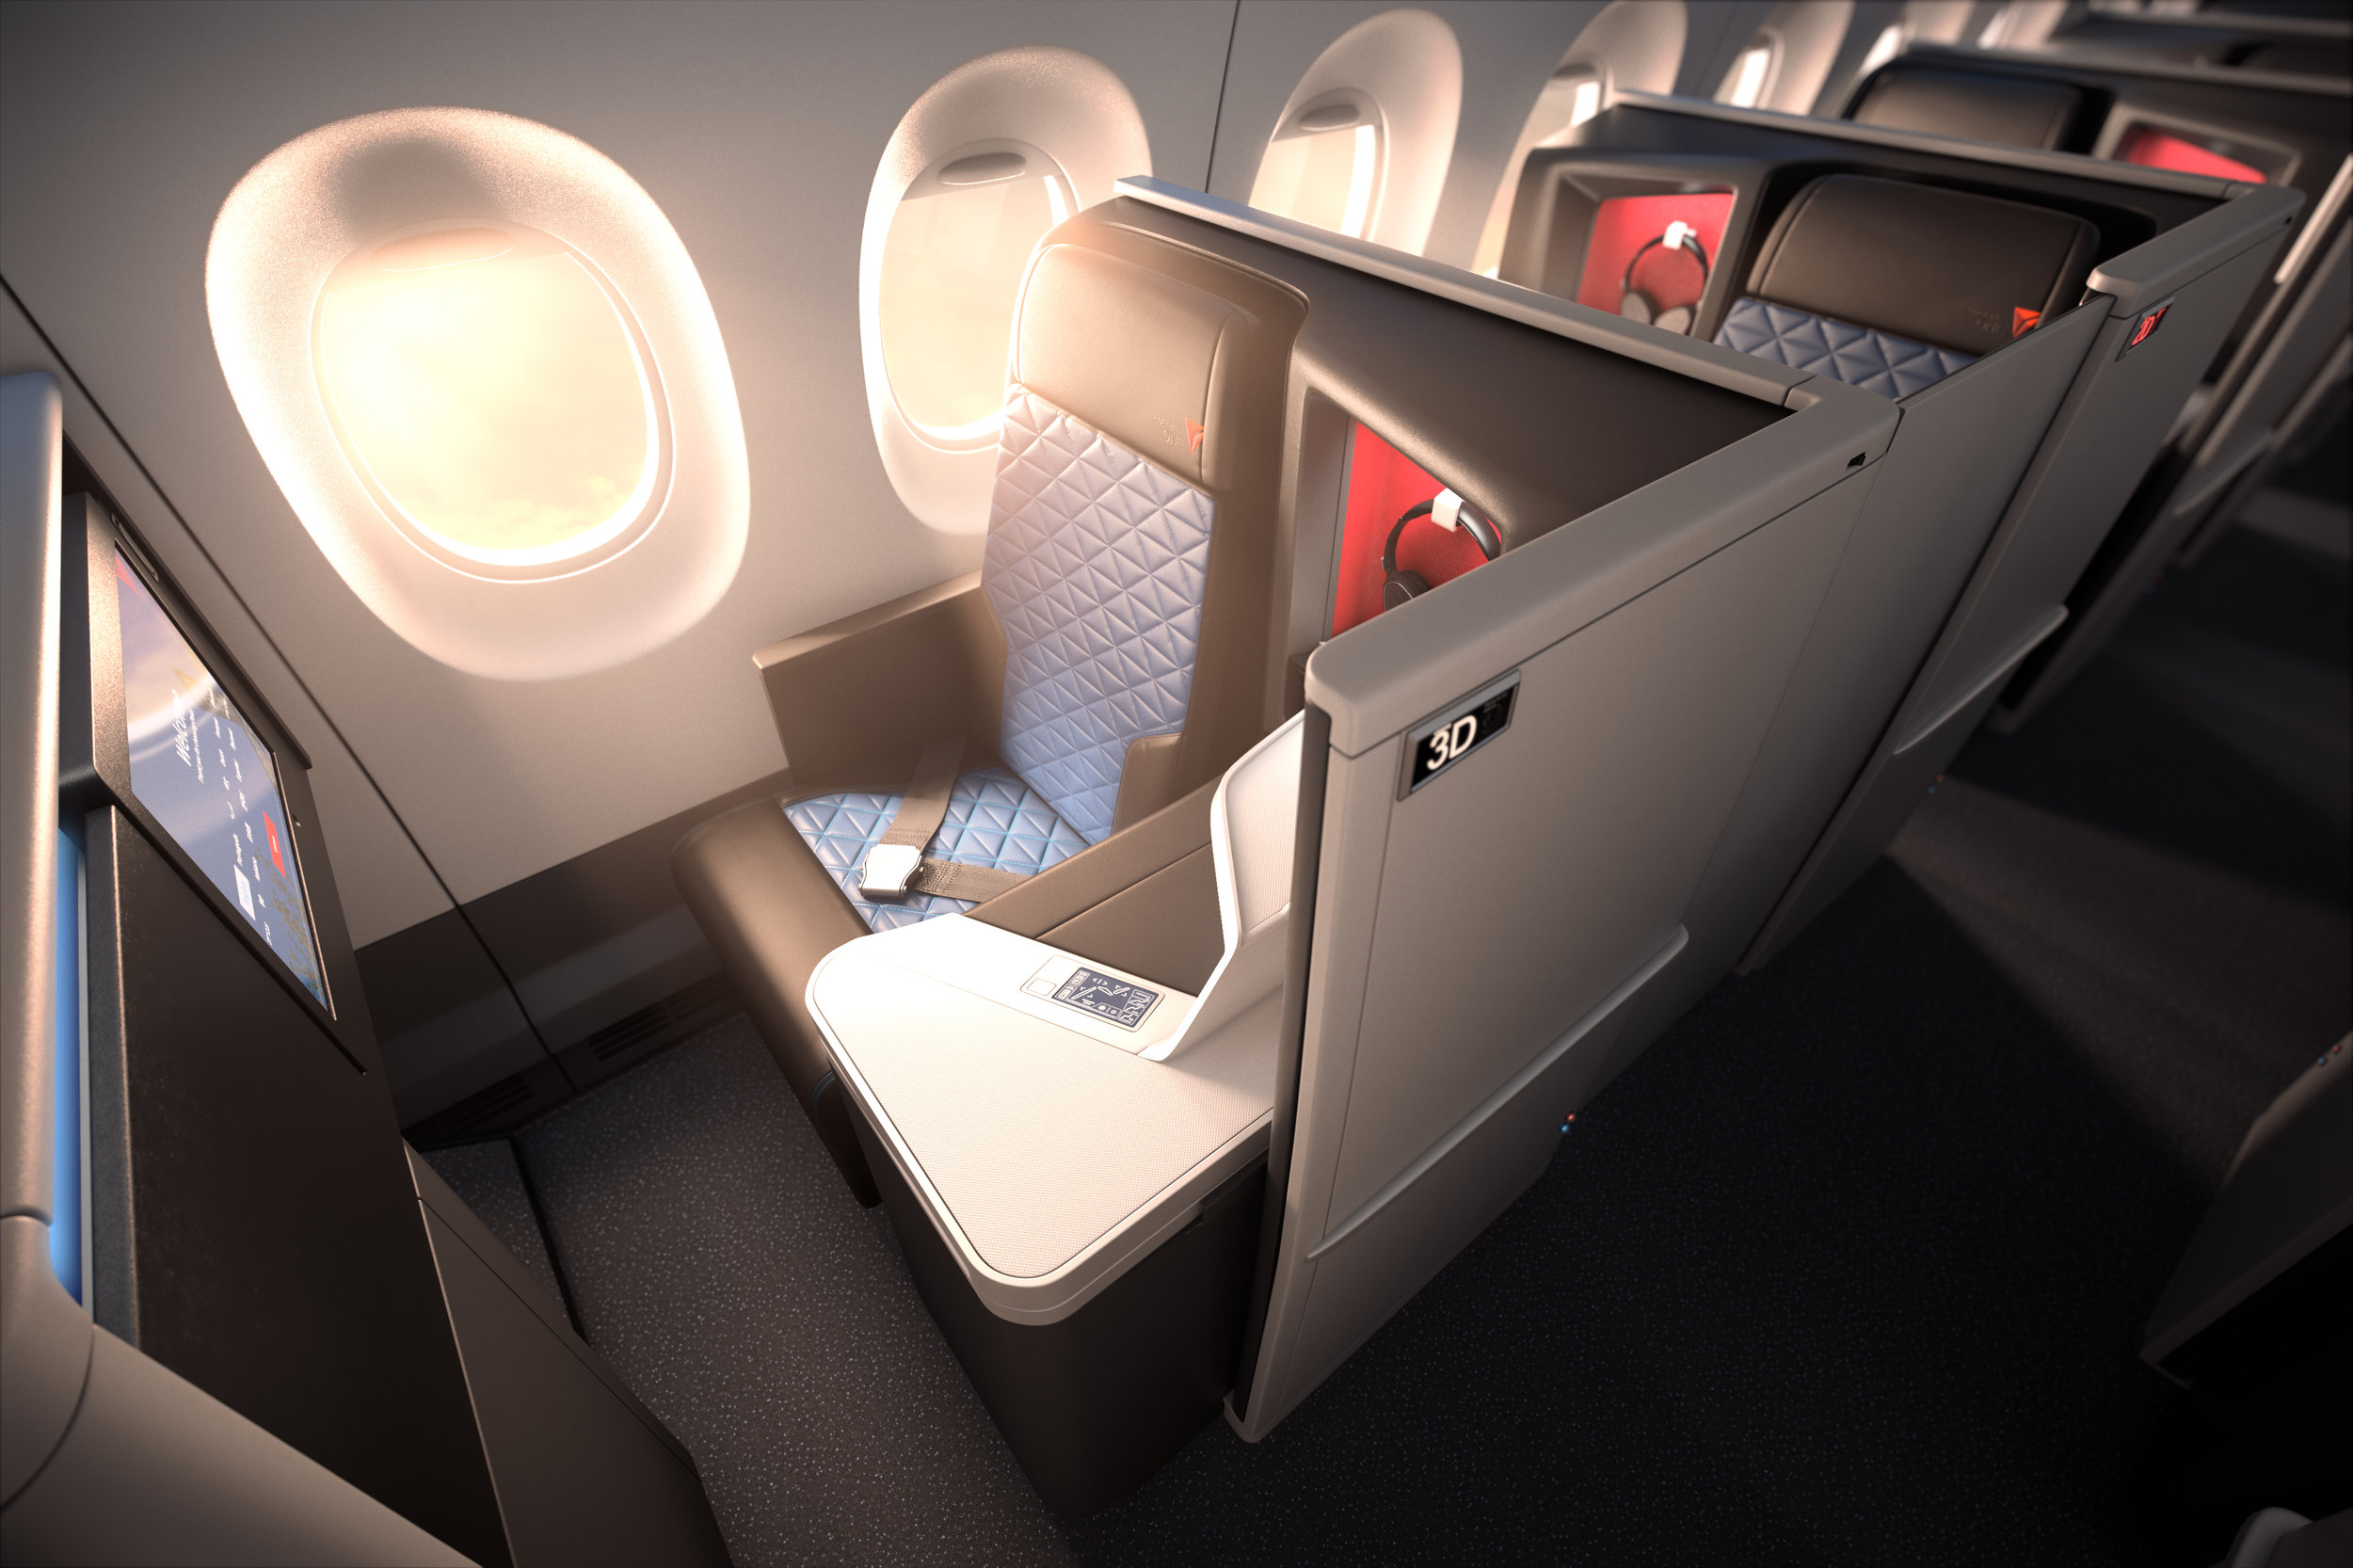 The A350 will be the first aircraft to feature the all-suites Delta One cabin   (Photo: Delta Air Lines) (click to enlarge)